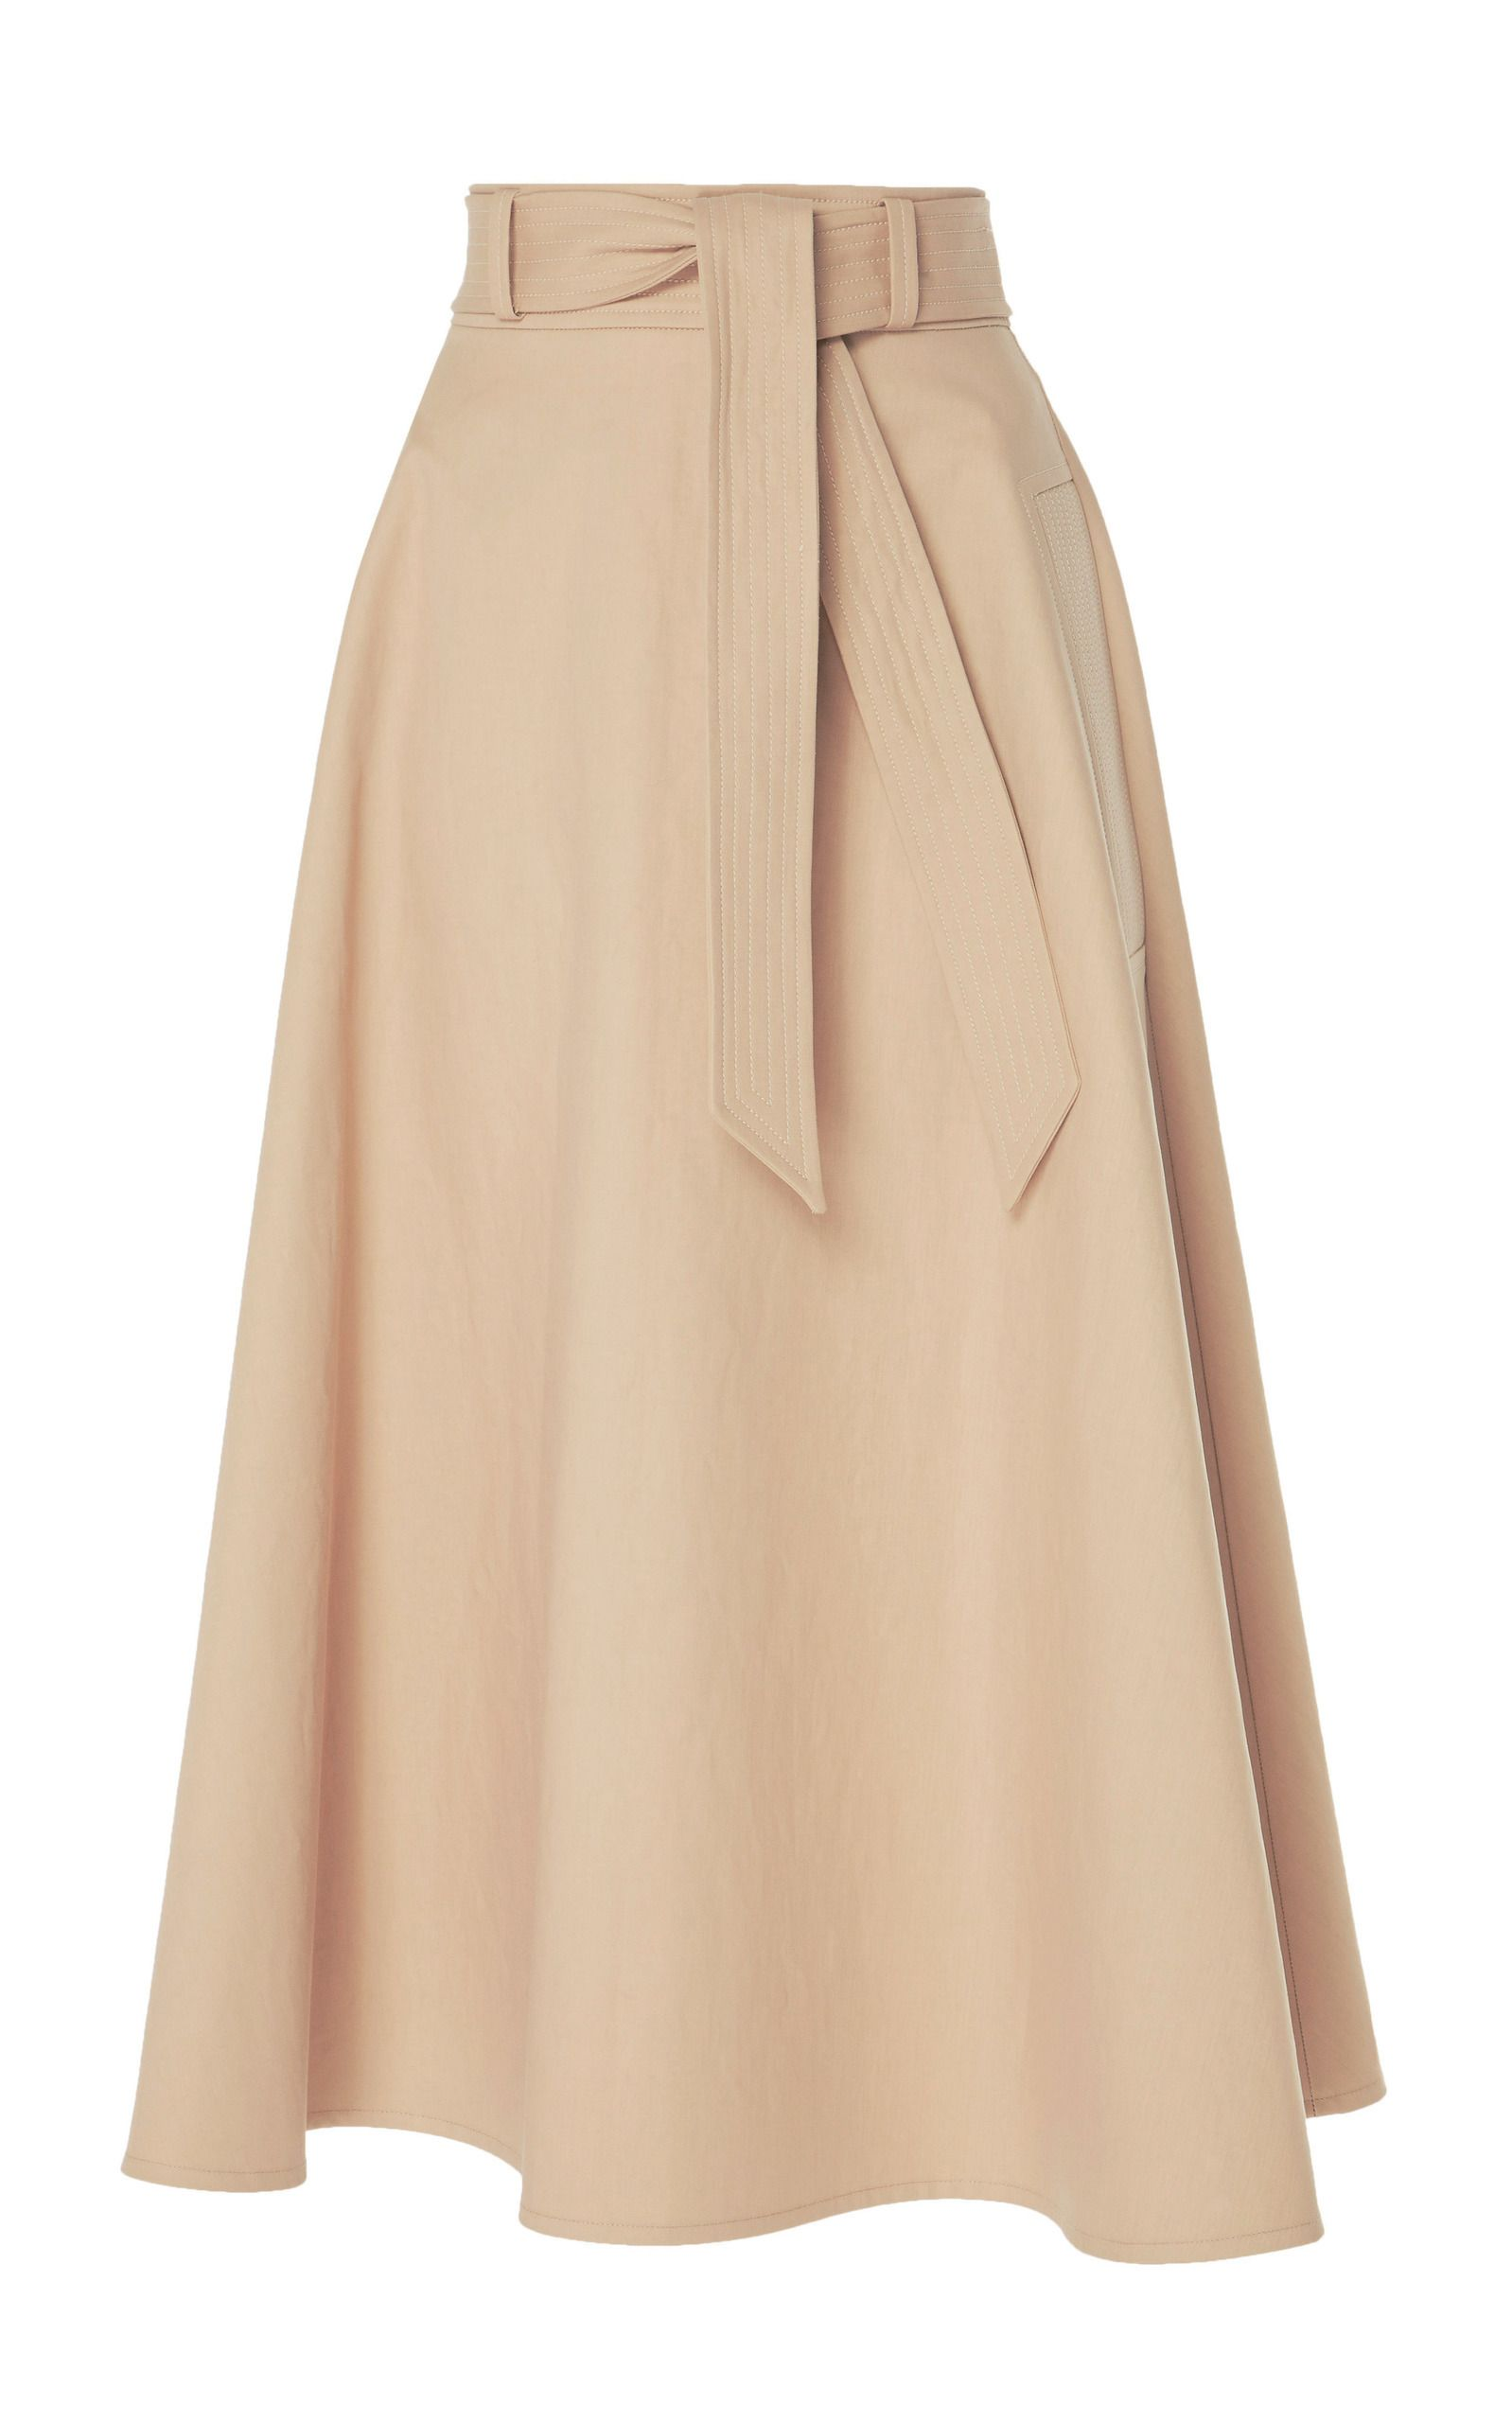 774a7aad50 Belted A-Line Midi Skirt by MARTIN GRANT Now Available on Moda Operandi